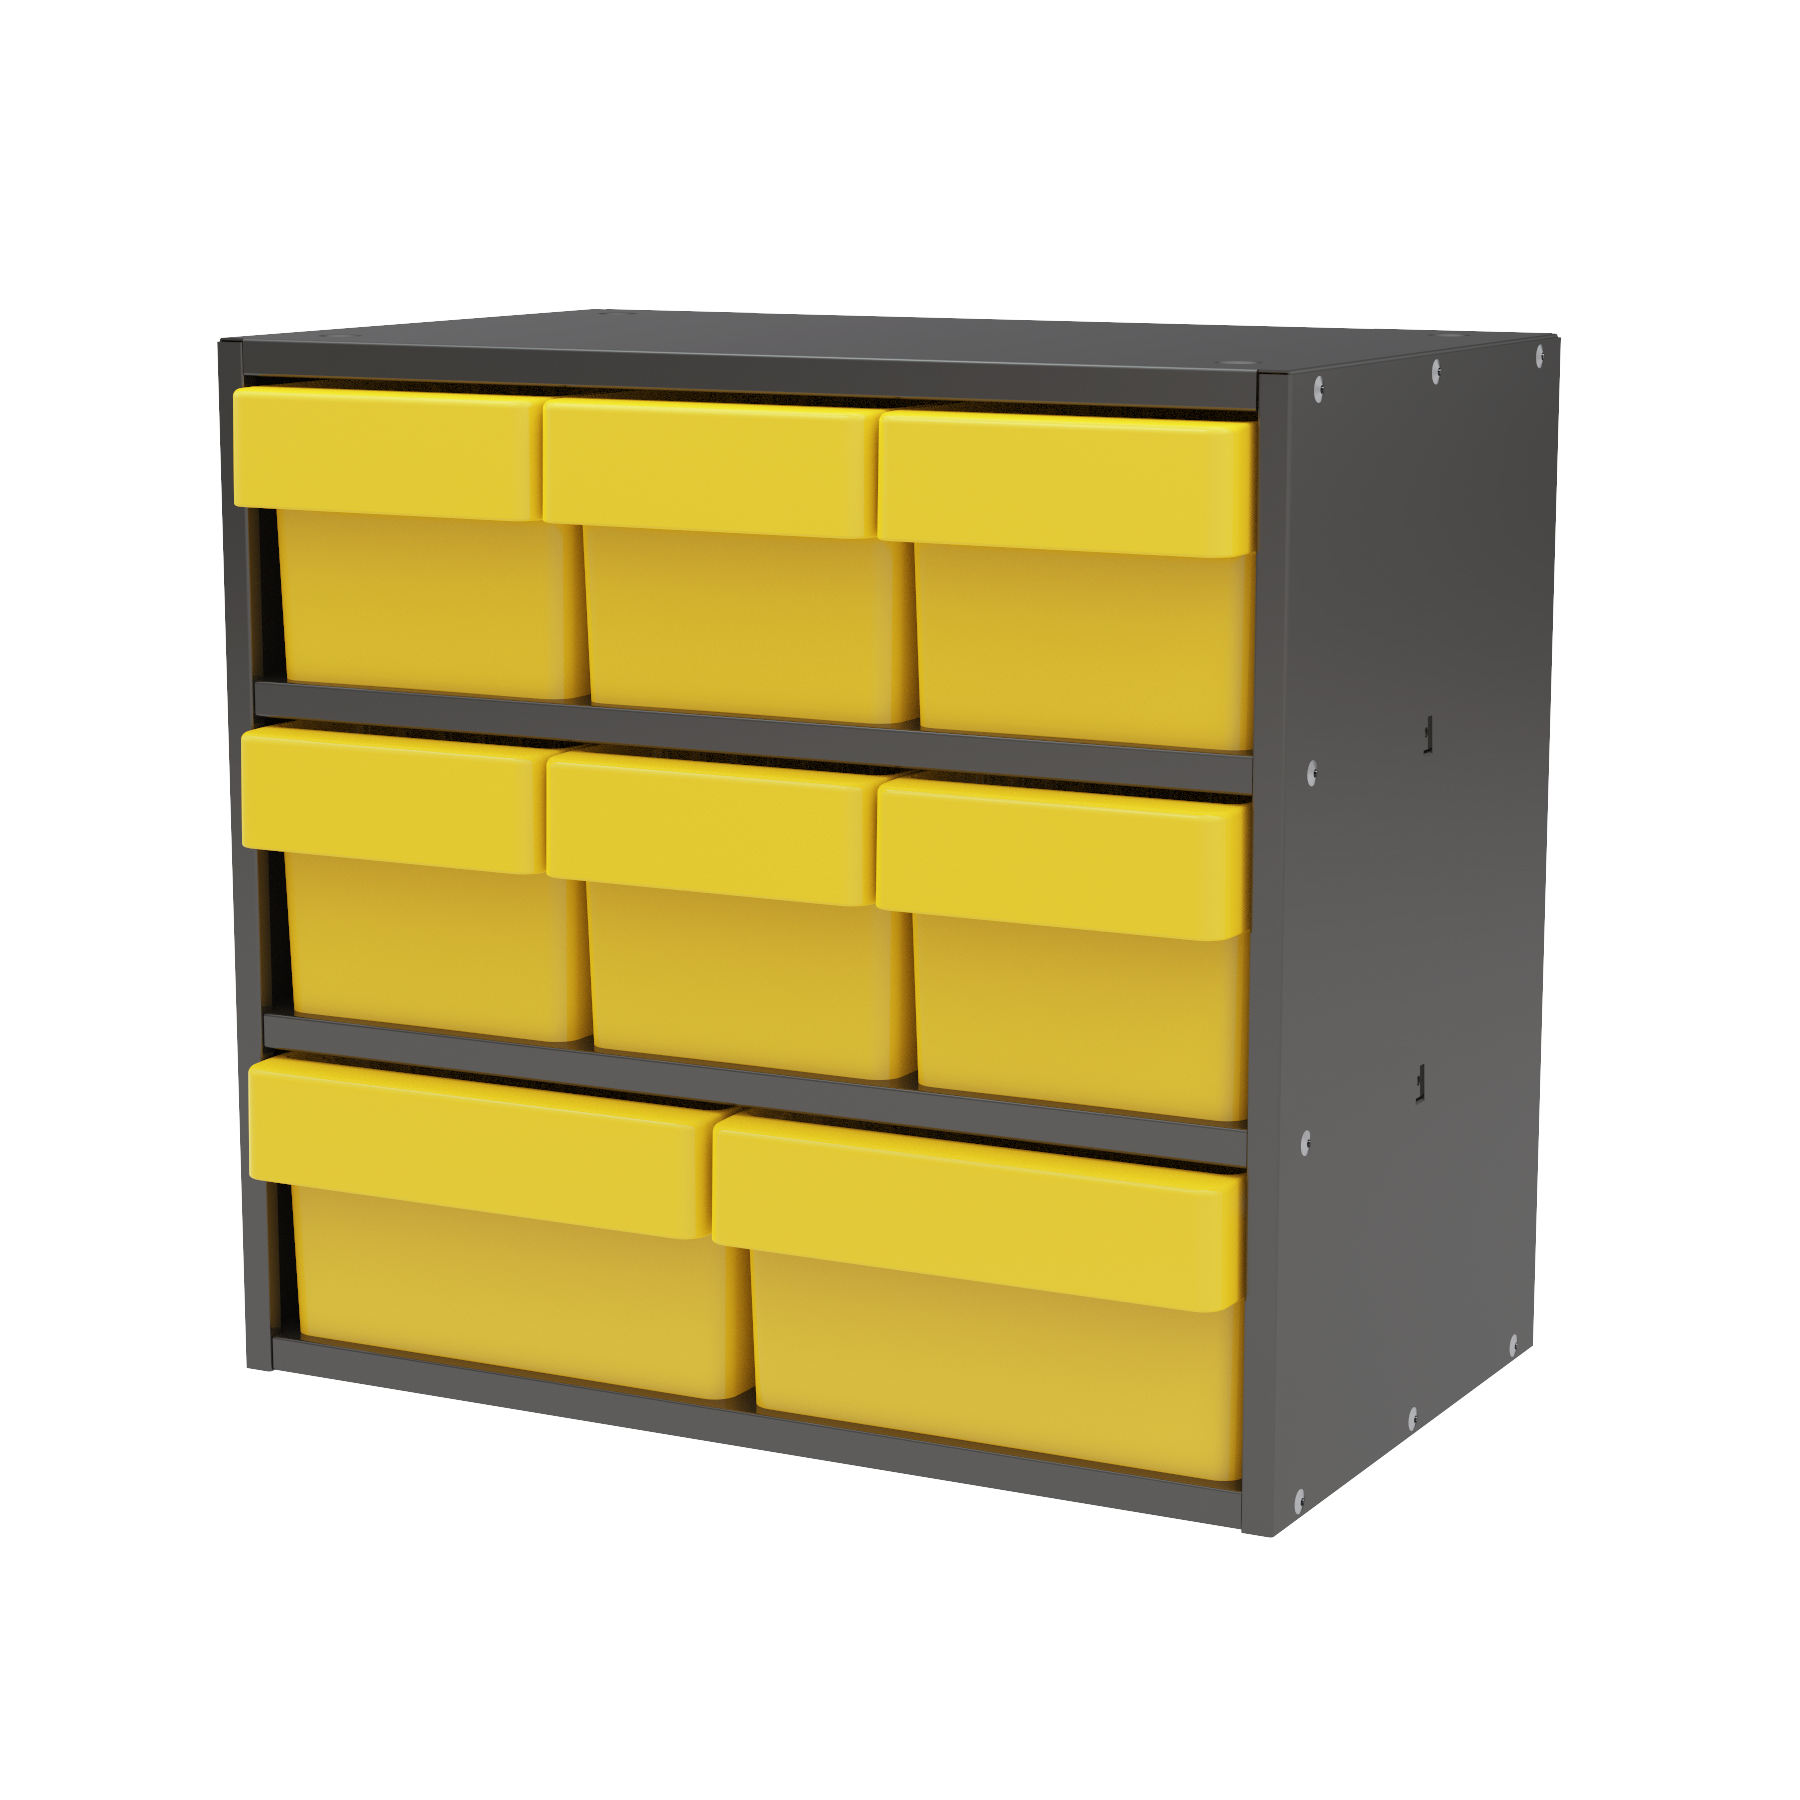 Item DISCONTINUED by Manufacturer.  Modular Cabinet, 18x11x16, 8 Drawers, Gray/Yellow (AD1811CASTYEL).  This item sold in carton quantities of 1.